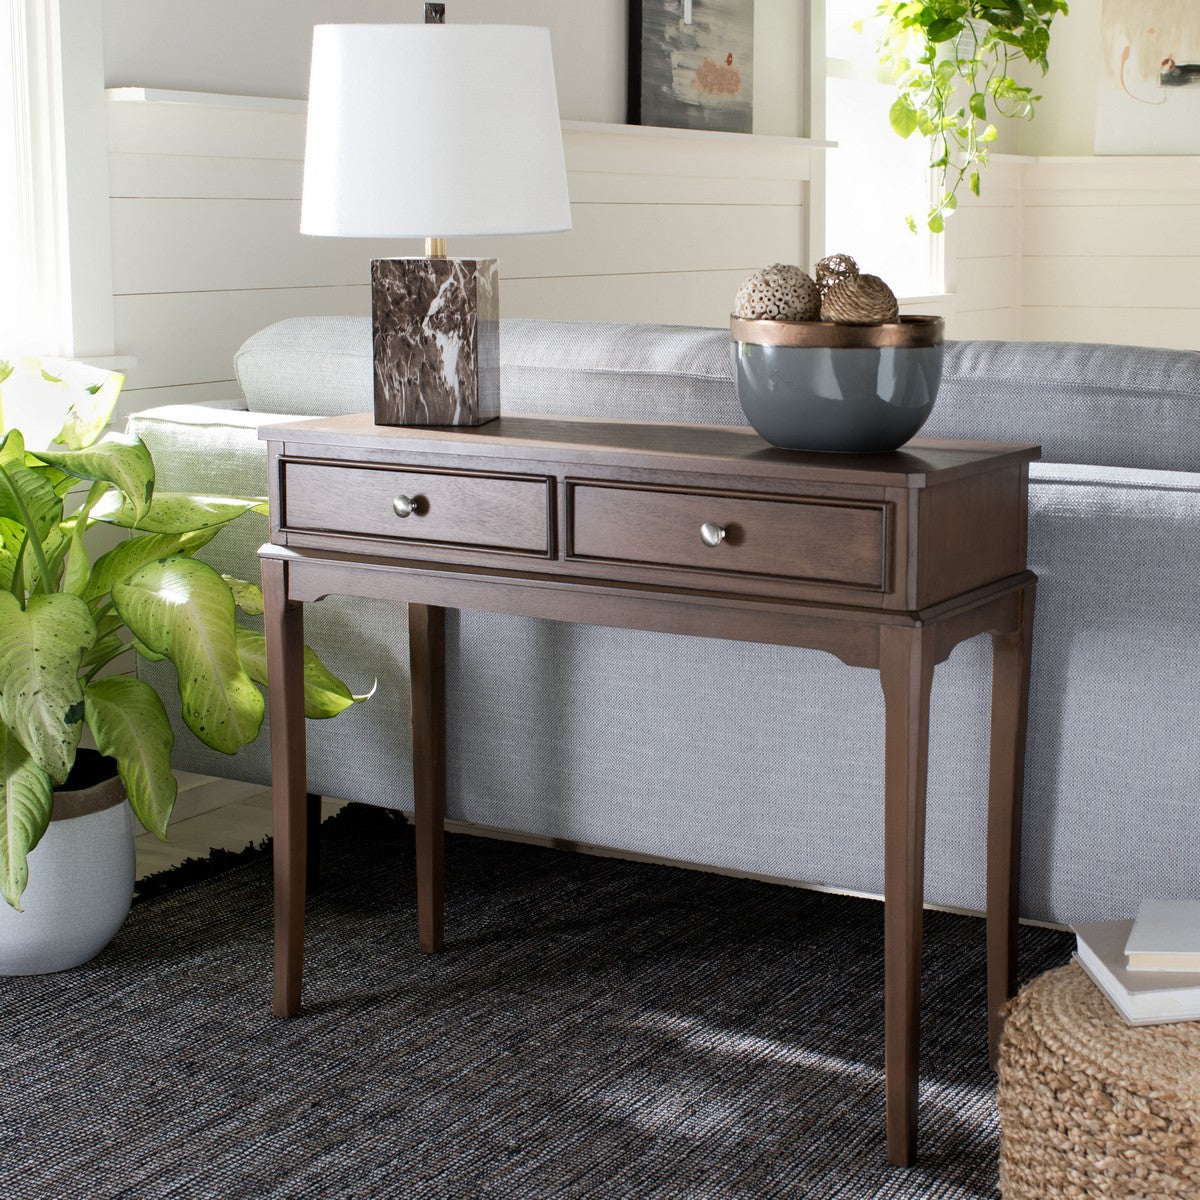 Opal 2 Drawer Console Table In Brown Burke Decor